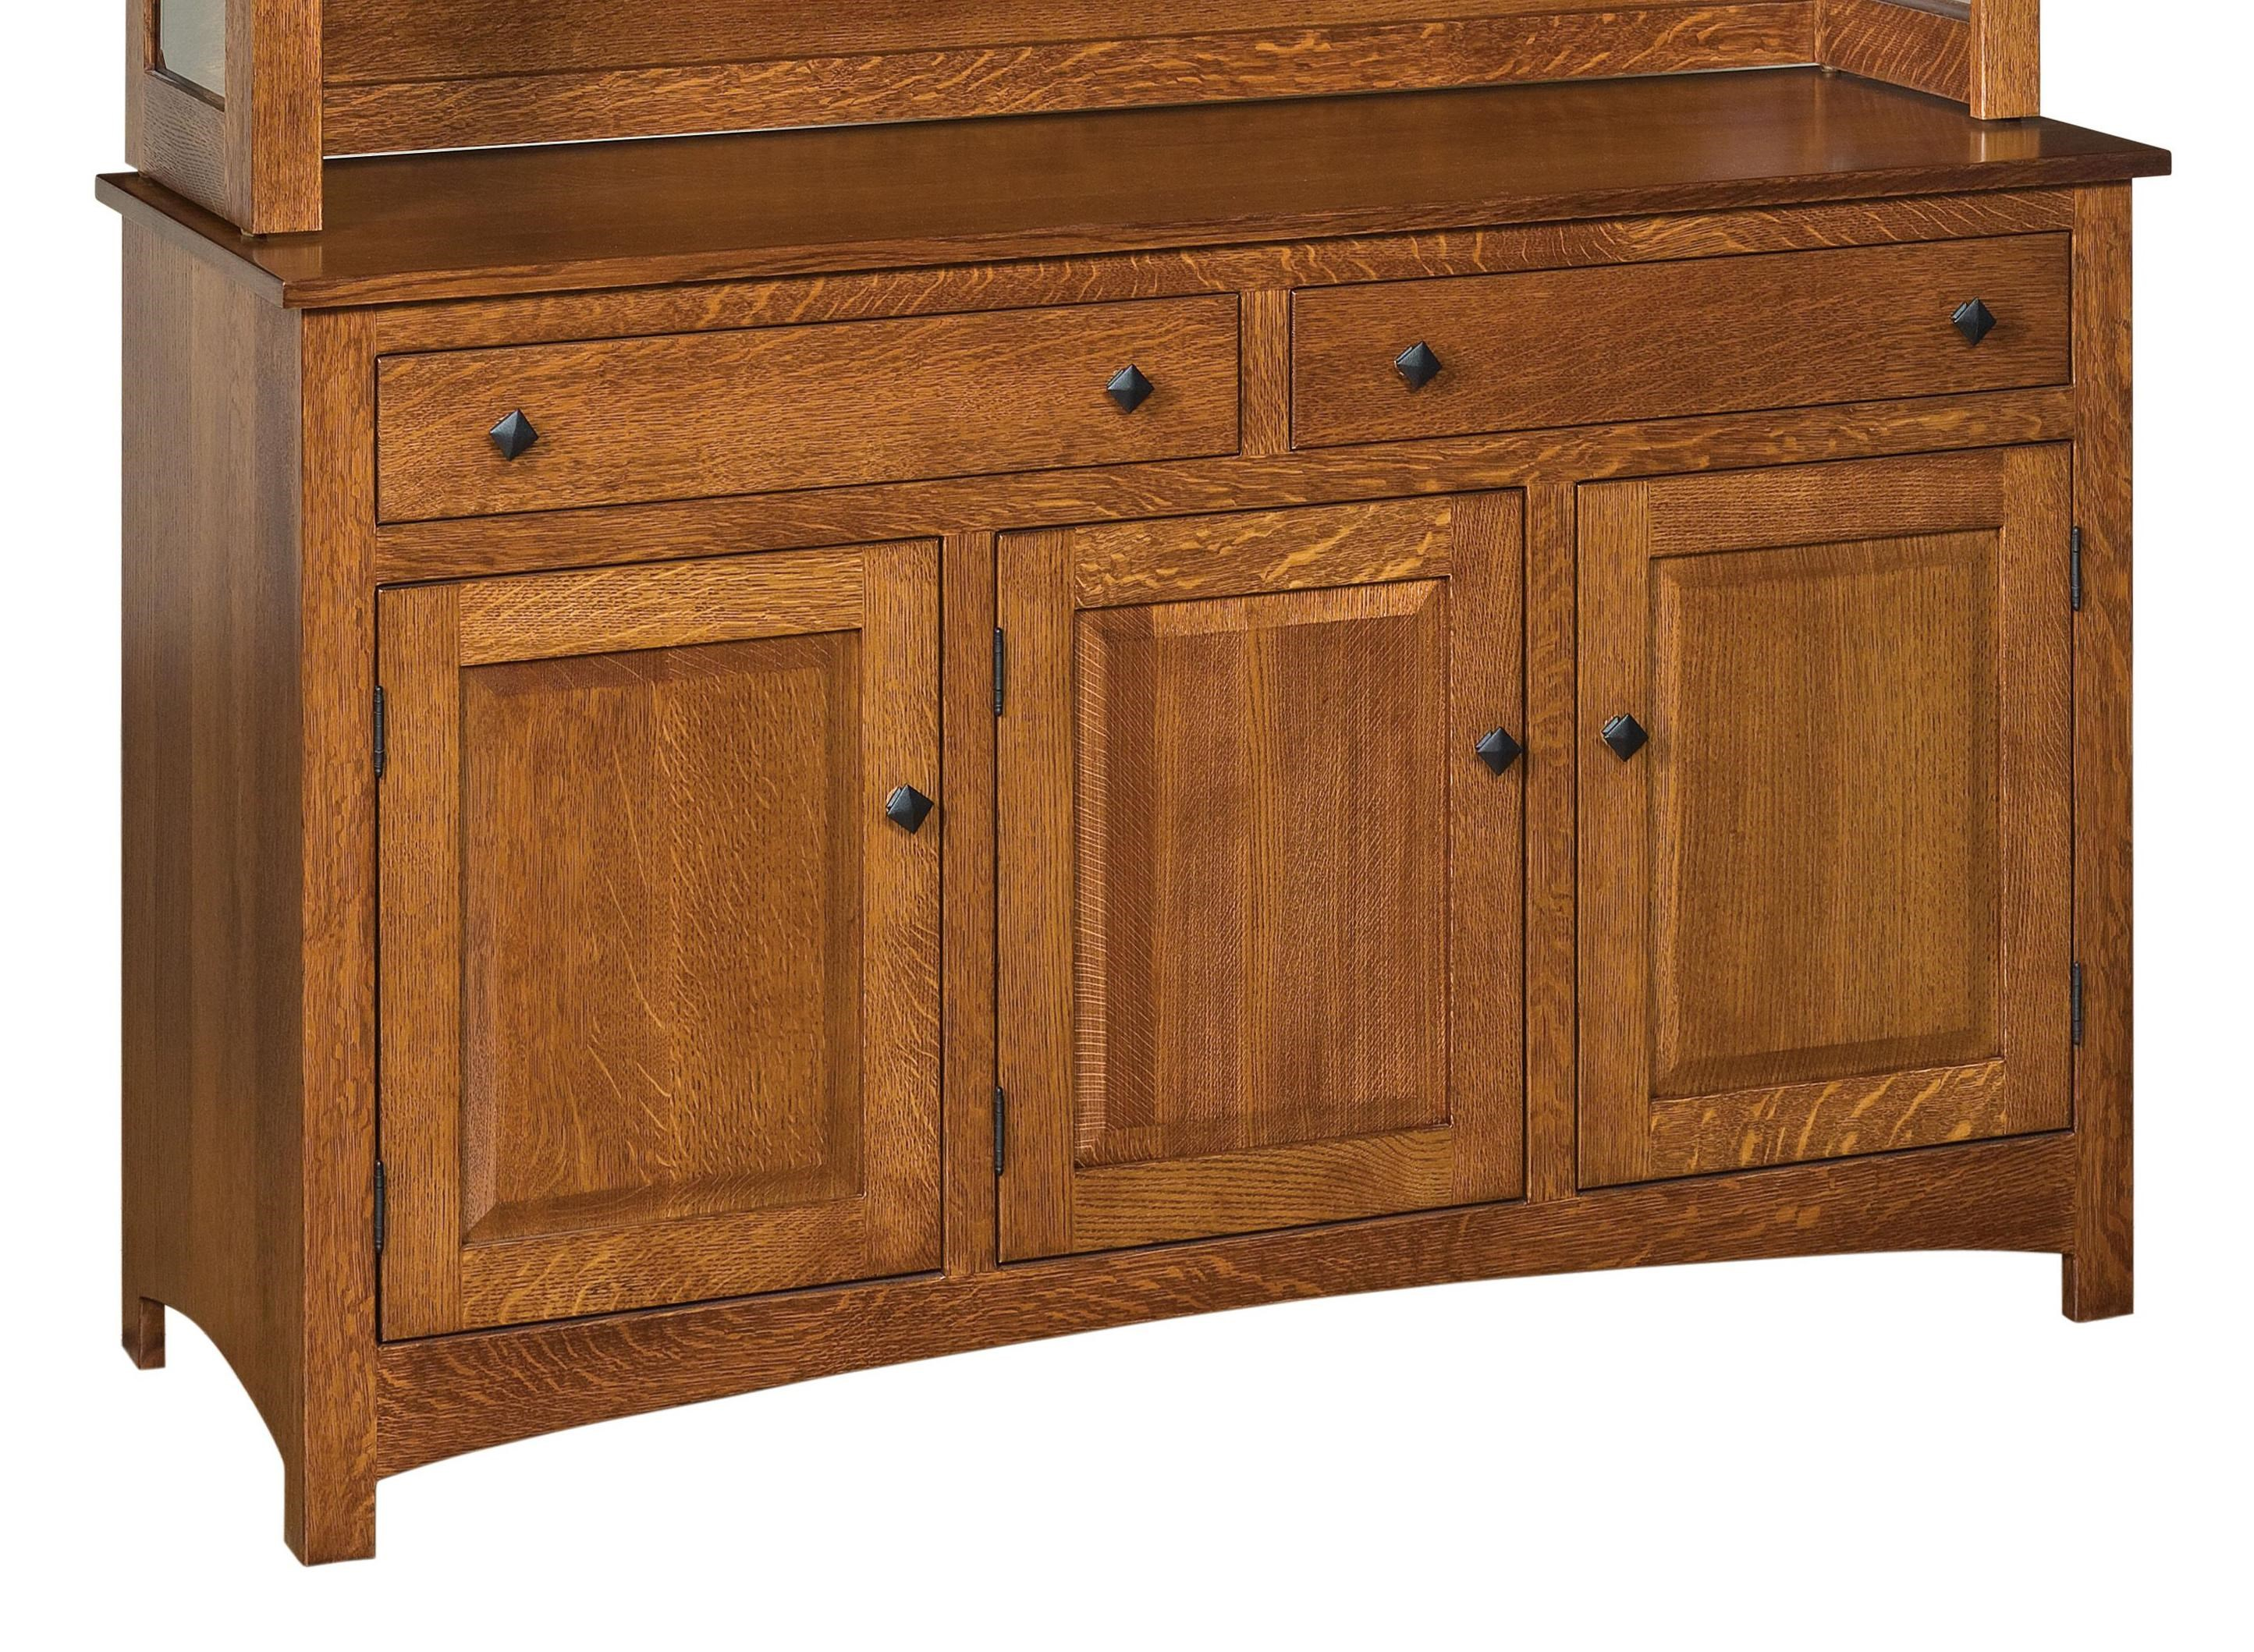 Indiana Amish Franklin Dining Buffet with 2 Drawers and 3 Doors & Indiana Amish Franklin Dining Buffet with 2 Drawers and 3 Doors ...